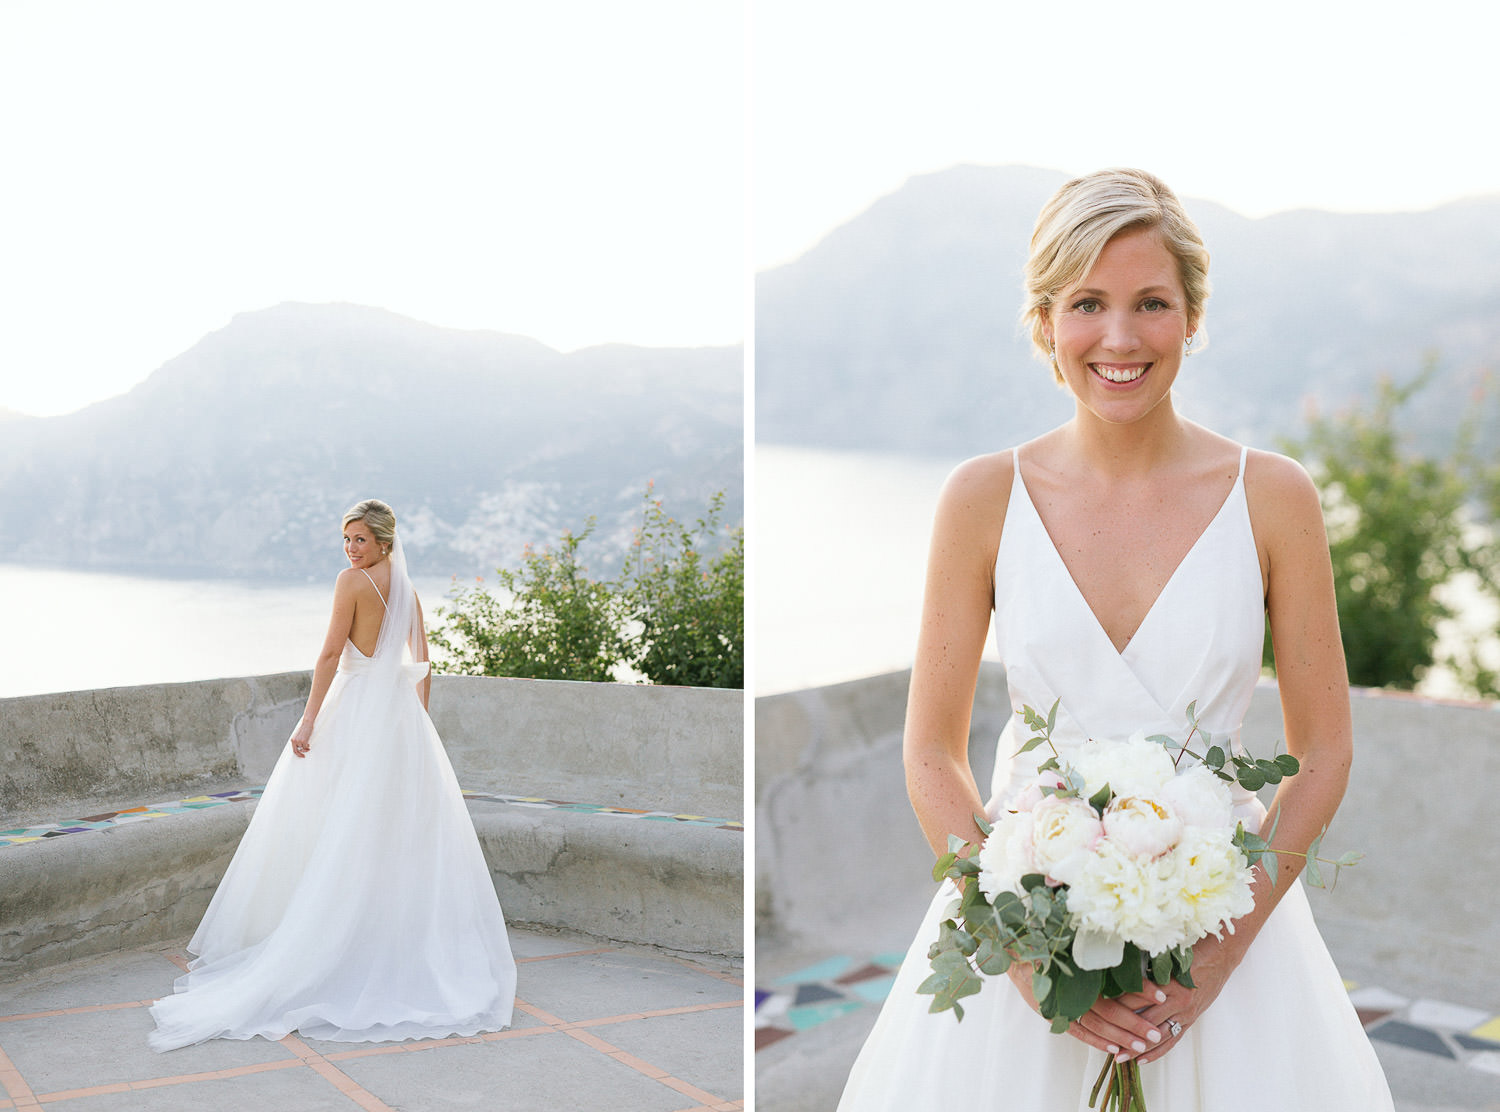 Bride getting ready at Casa Angelina - Amalfi Coast wedding - Photo: Camilla Anchisi -Amalfi Coast wedding photographer